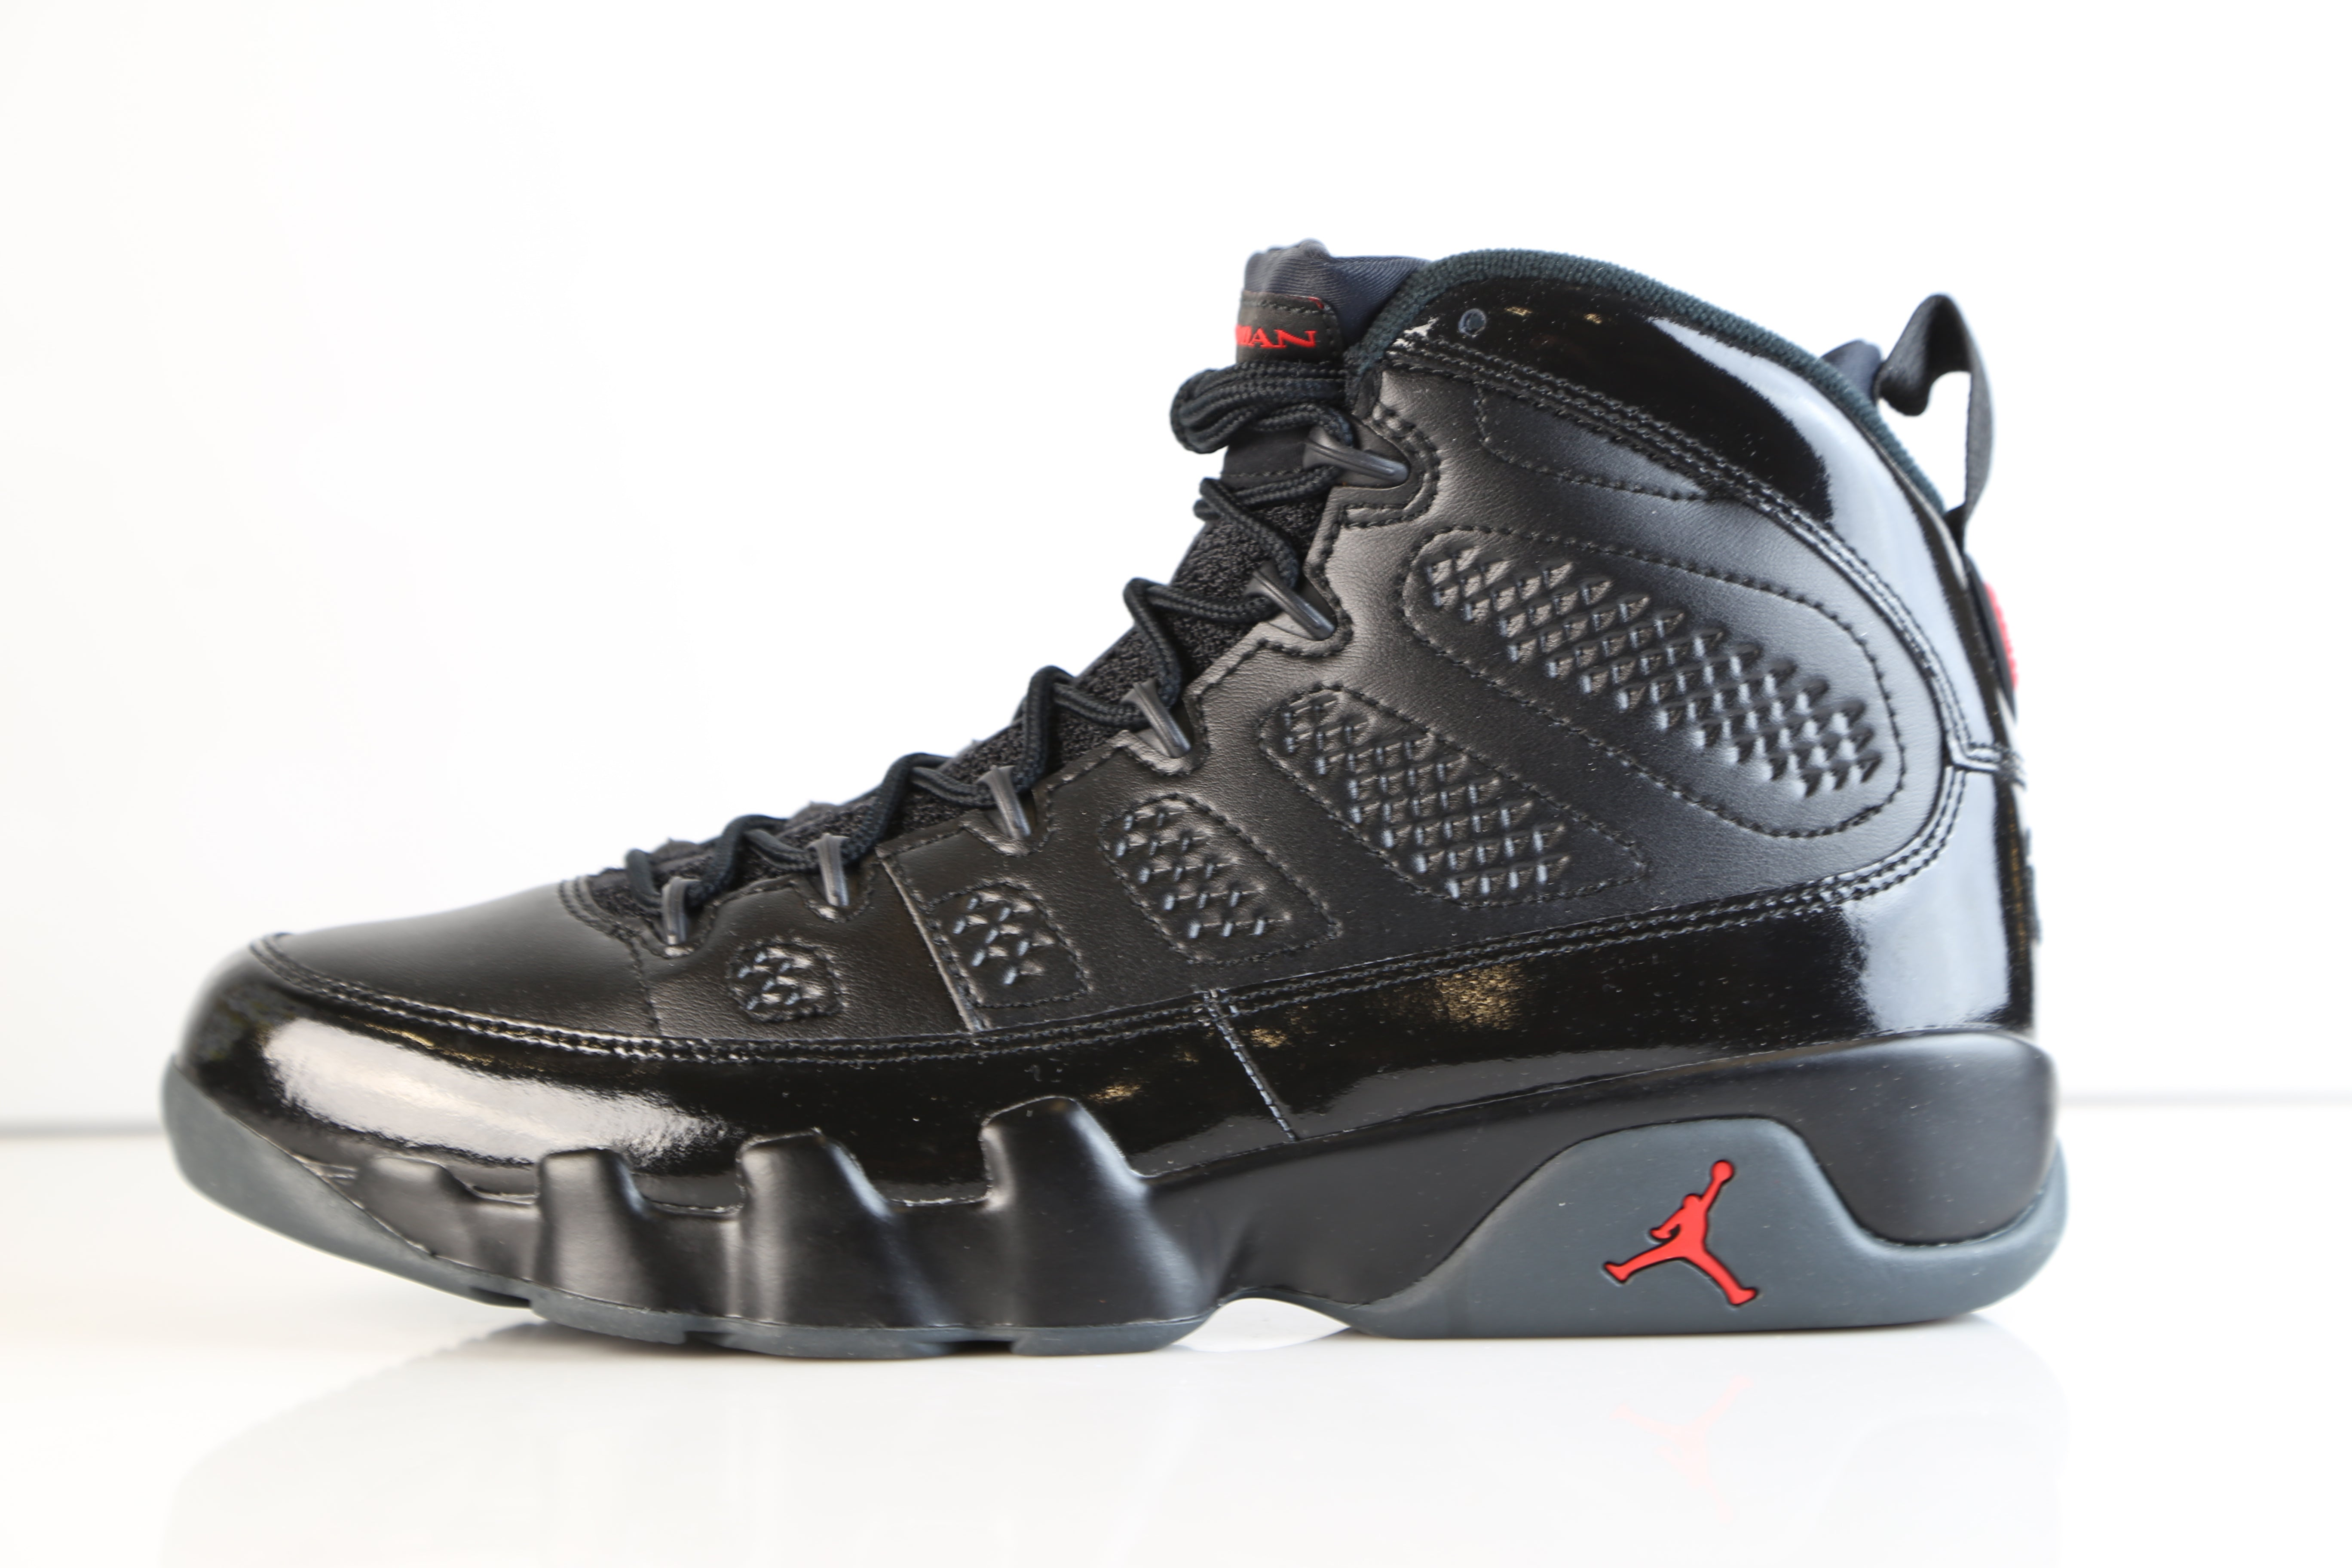 big sale 7fc5d d7e40 Nike Air Jordan Retro 9 Bred Black Anthracite University Red ...